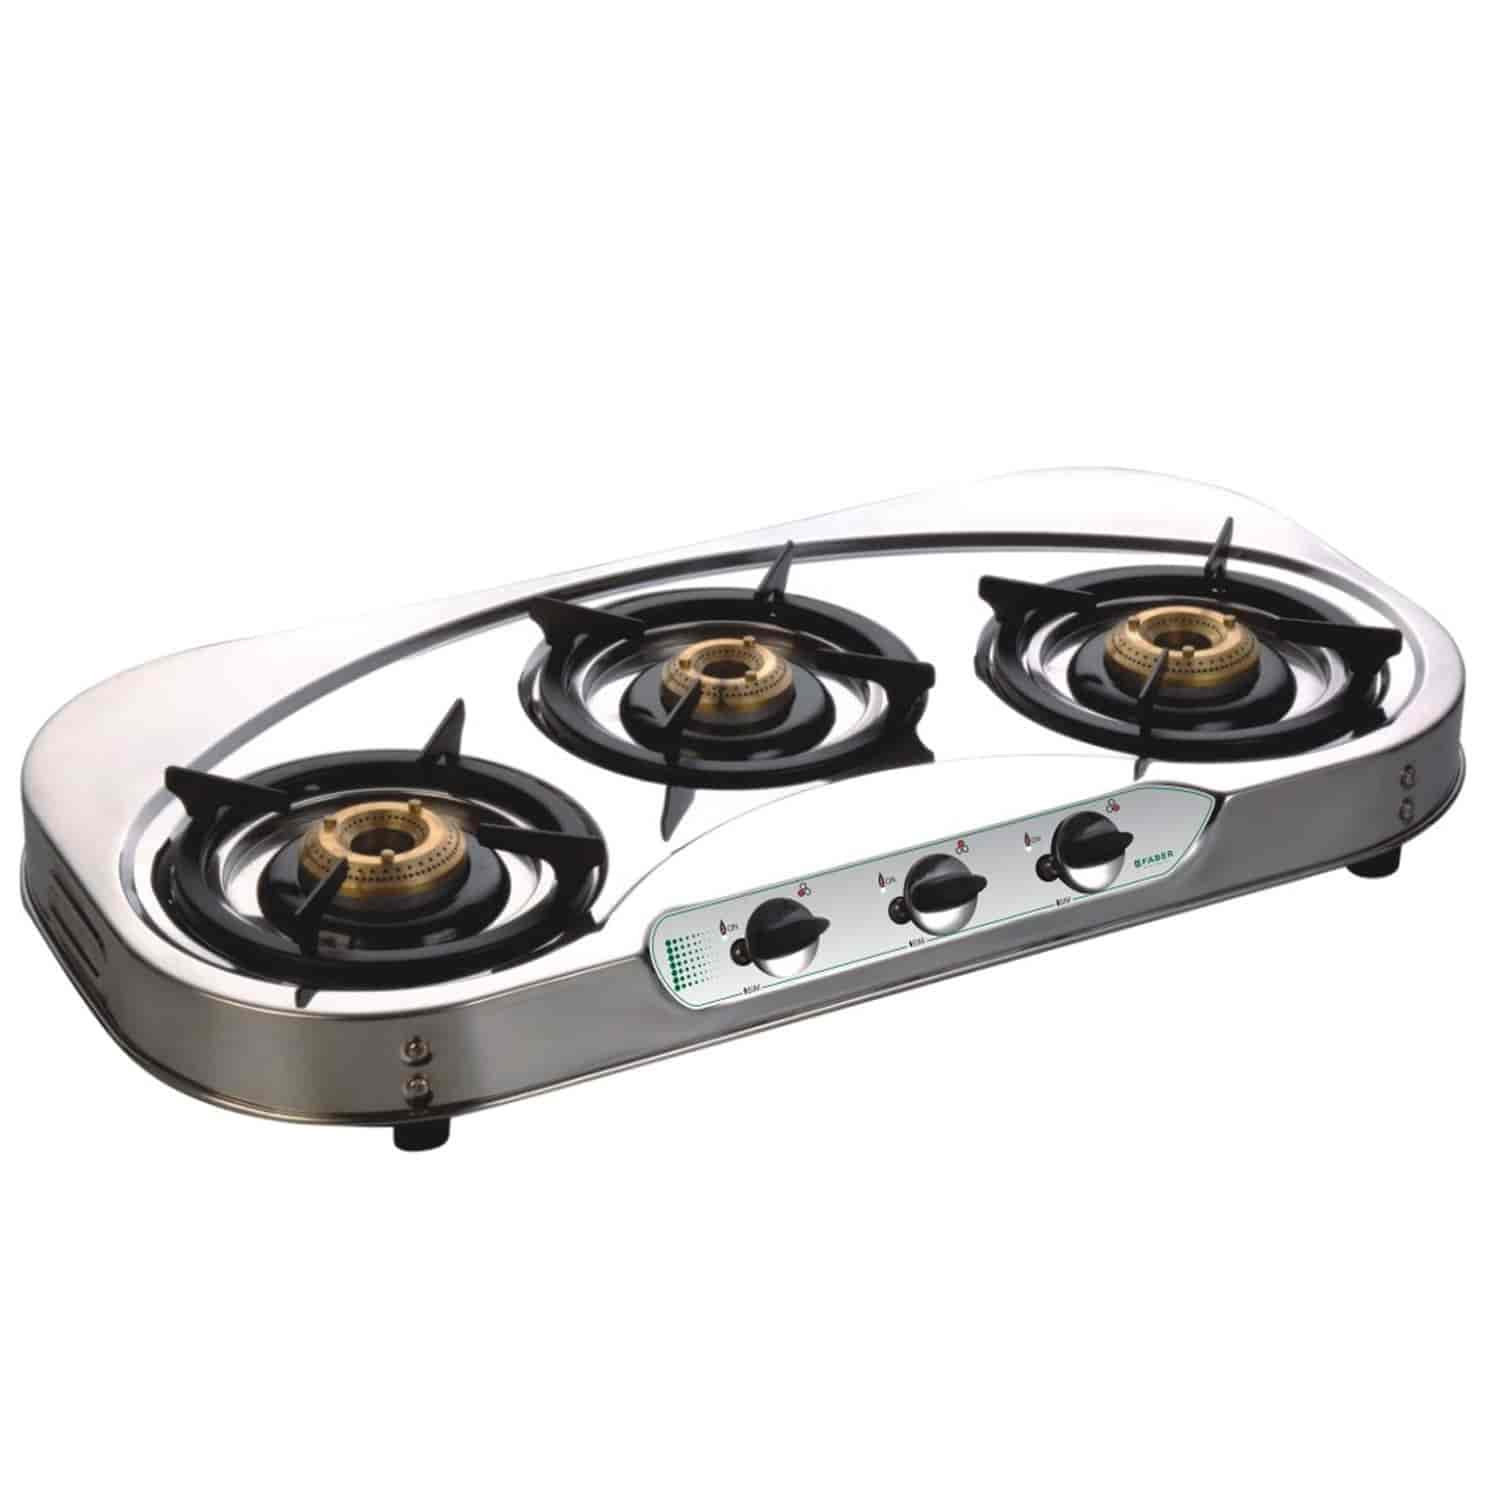 Faber Curvy 3B SS Stainless Steel Cooktop